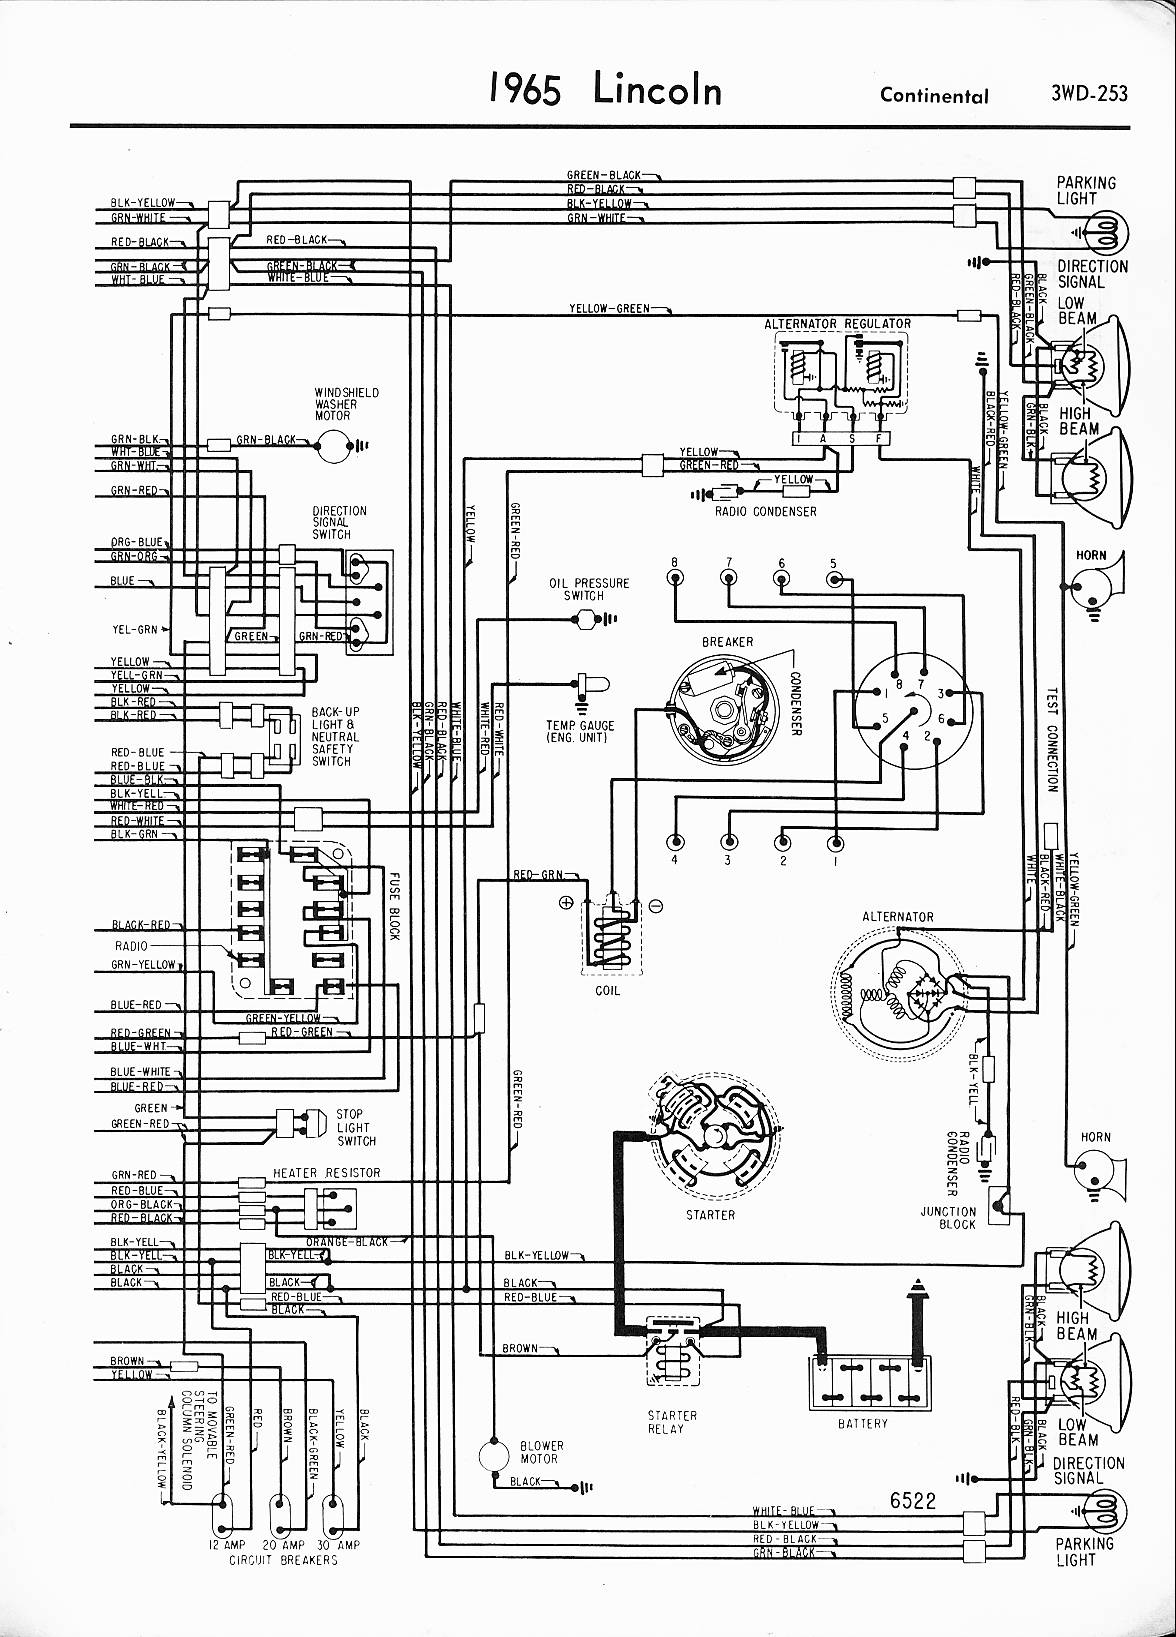 [TBQL_4184]  36980B9 67 Lincoln Continental Fuse Box | Wiring Resources | 94 Lincoln Continental 3 8l Wiring Diagram |  | Wiring Resources